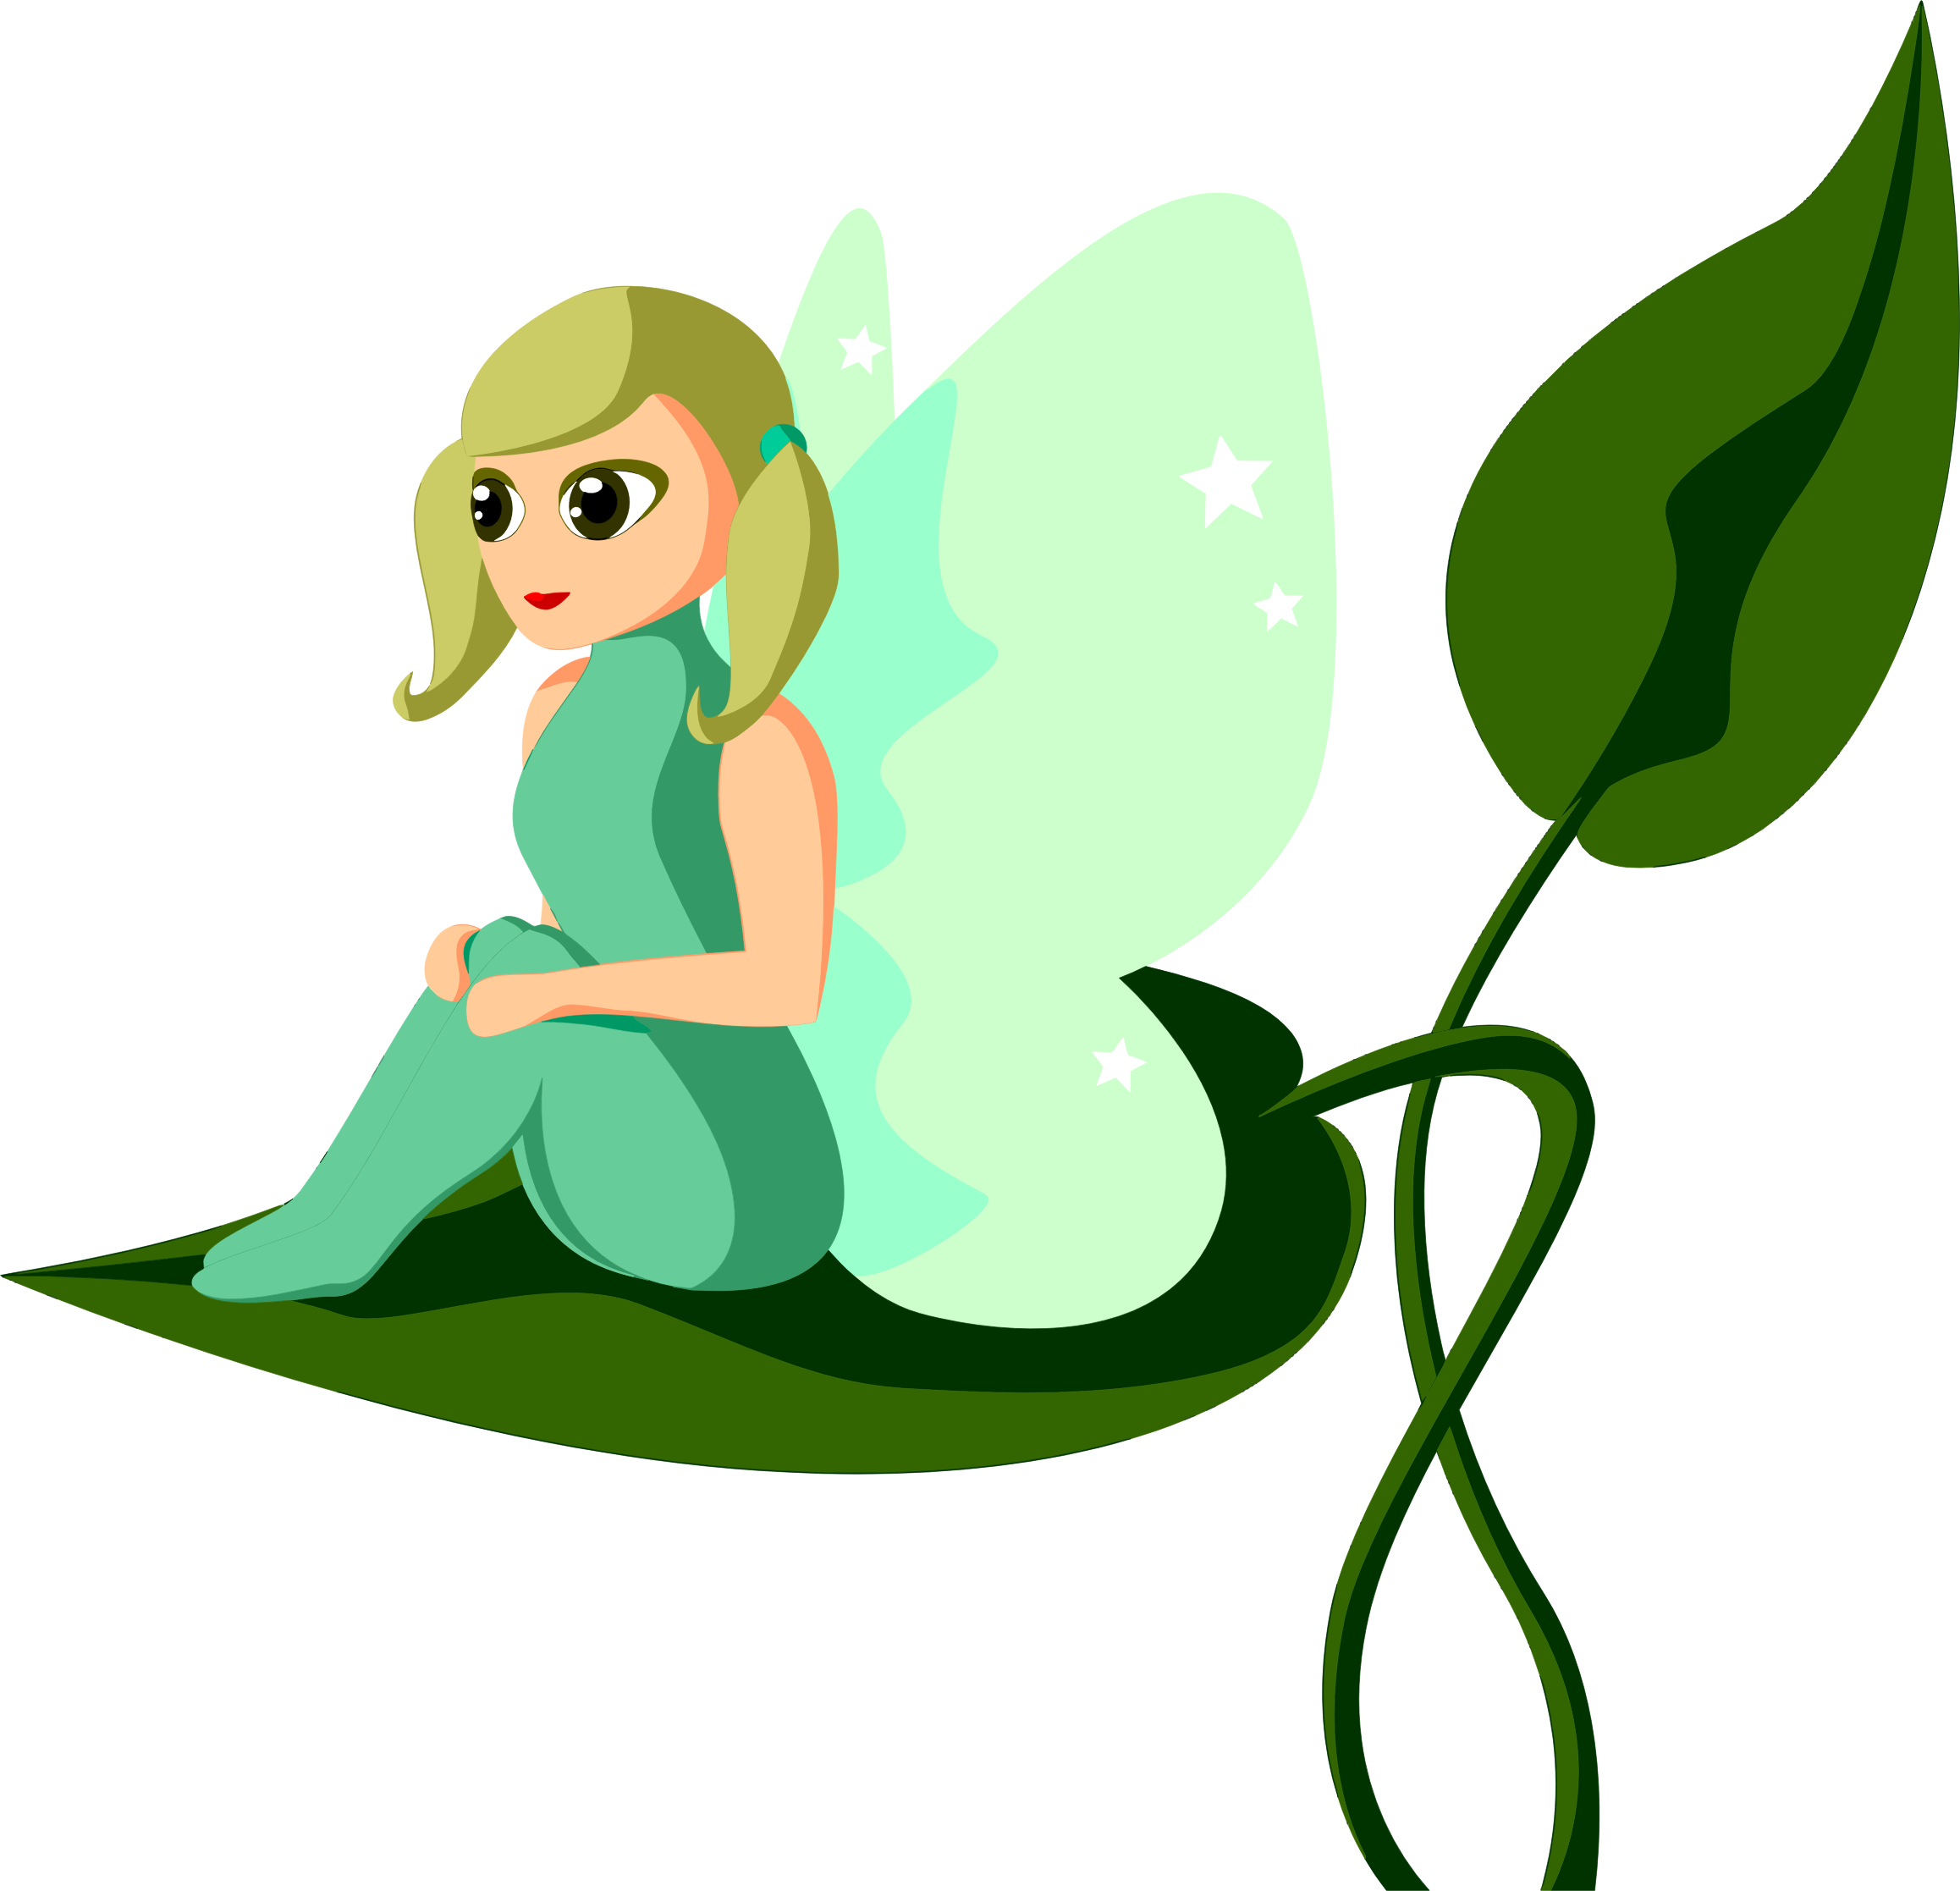 Female Fairy Sitting On Leaf by GDJ